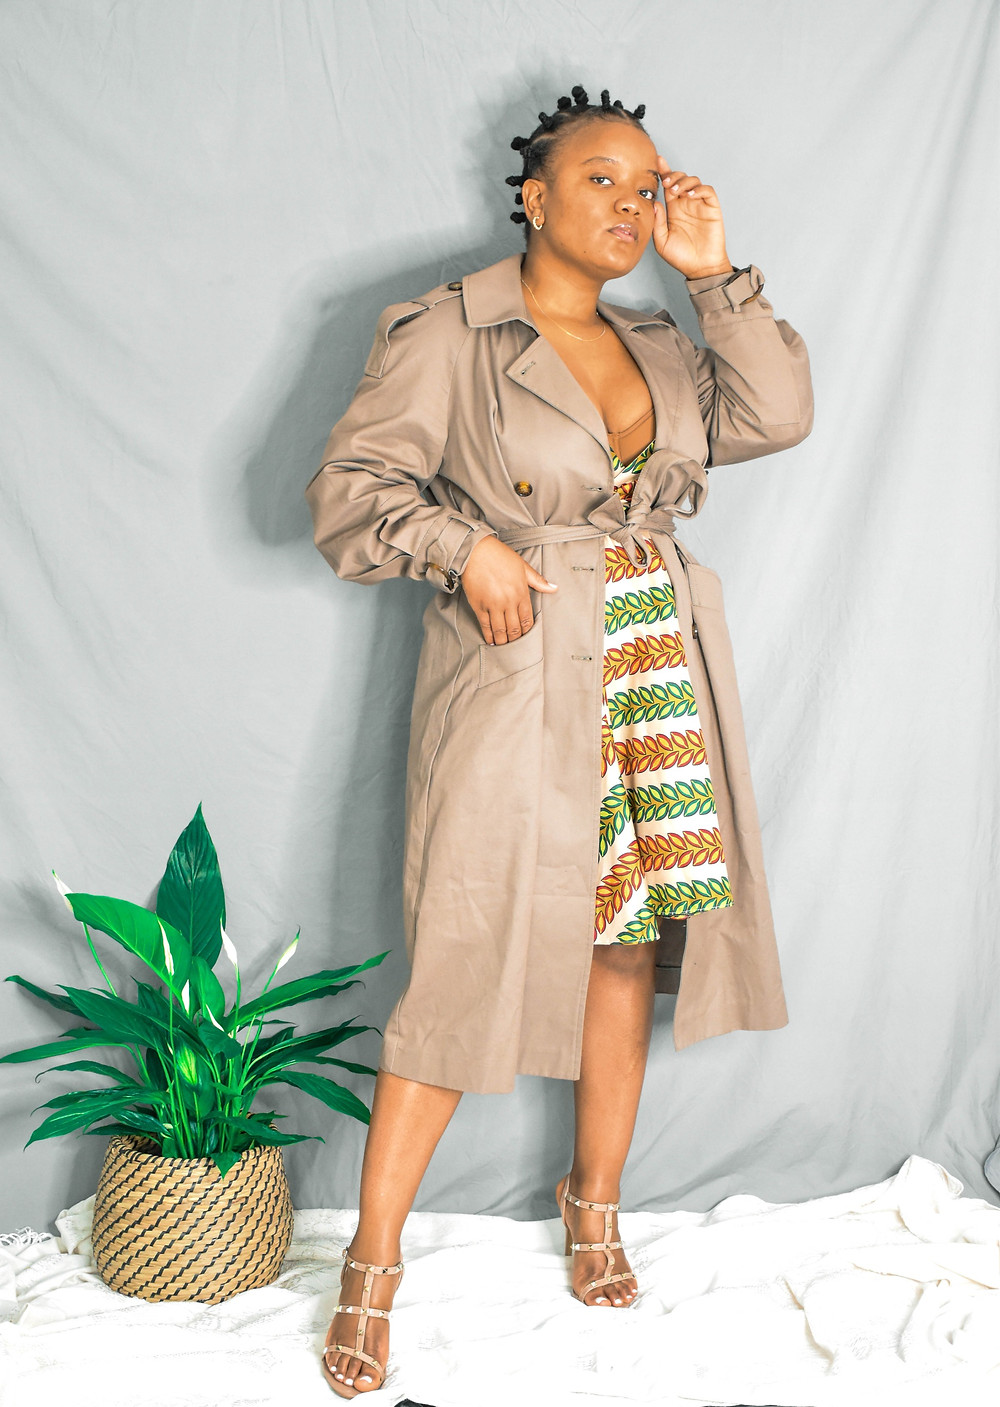 Styling african print dress on a chilly spring or summer day.